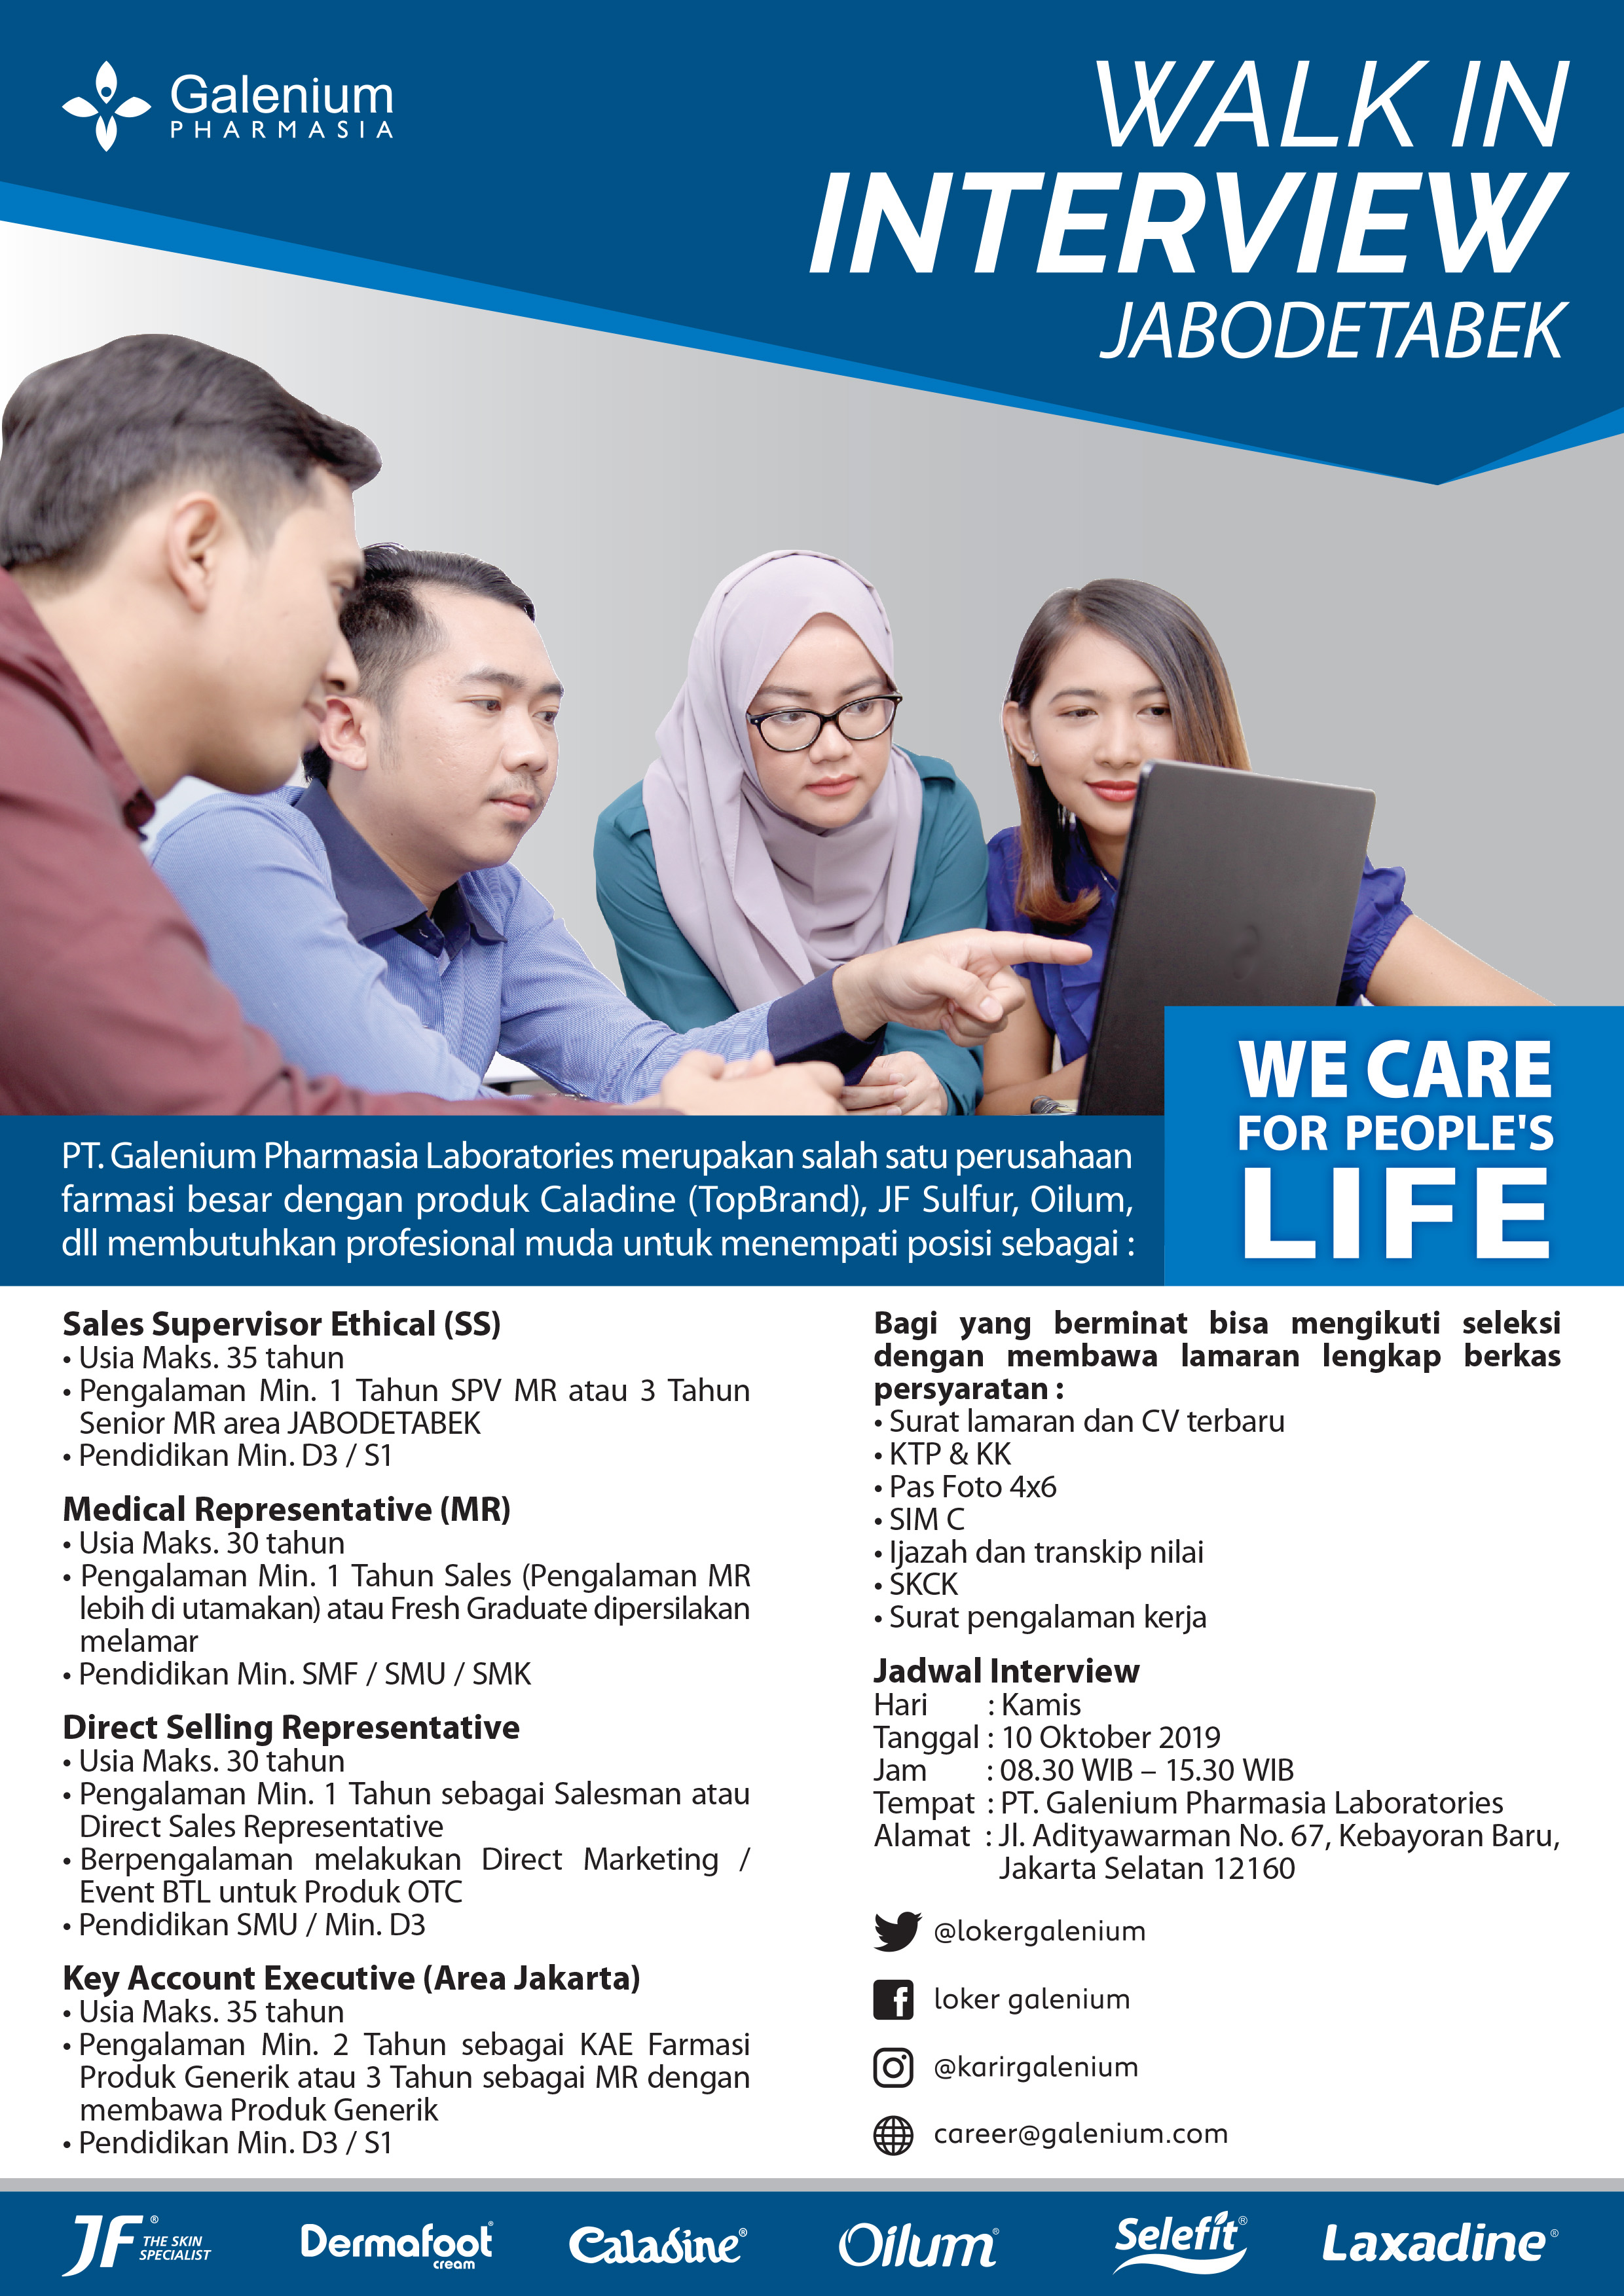 WALK IN INTERVIEW JABODETABEK